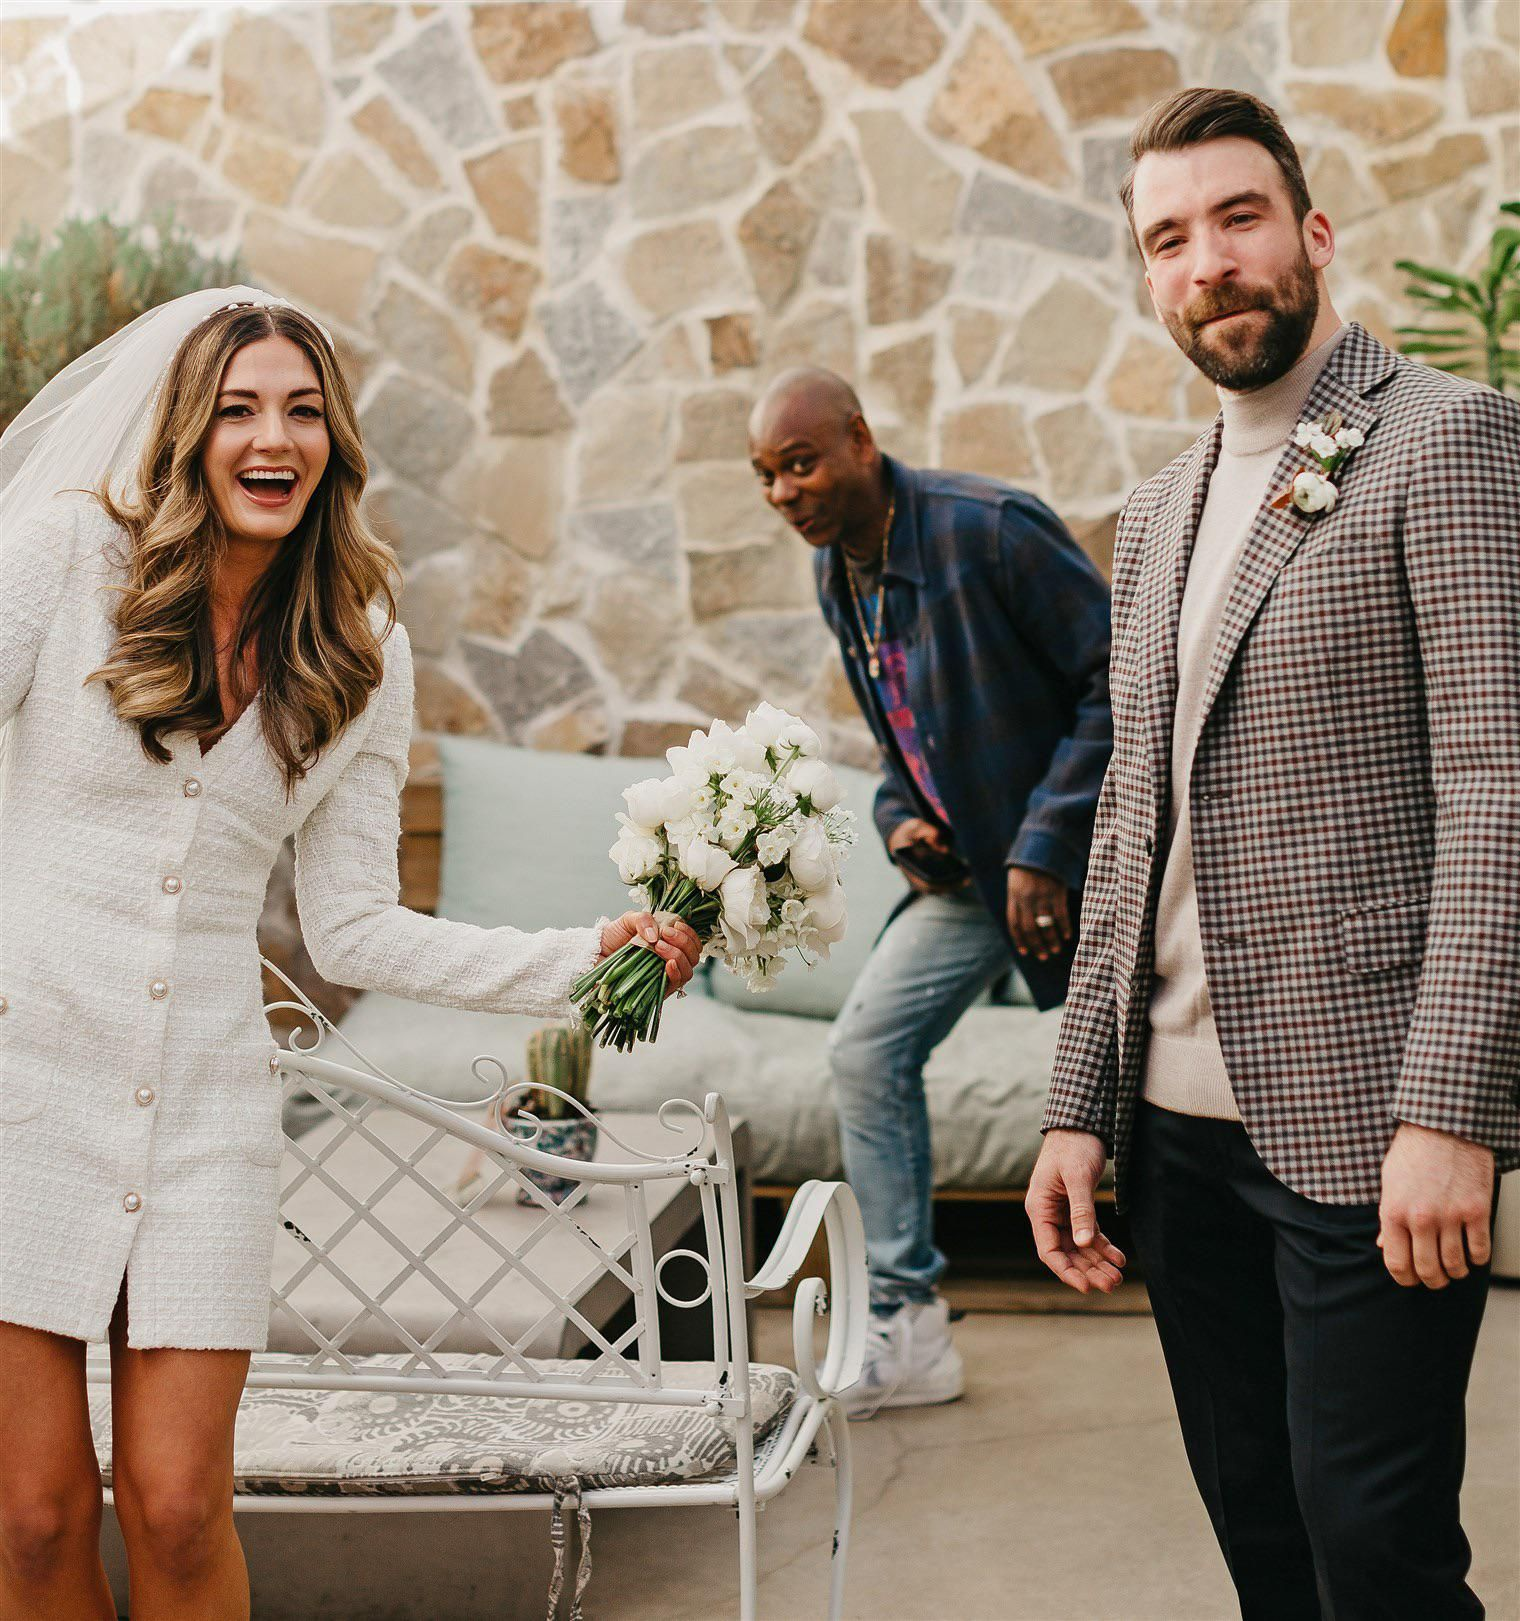 Dave Chappelle photobombs newlyweds' first photo as husband and wife